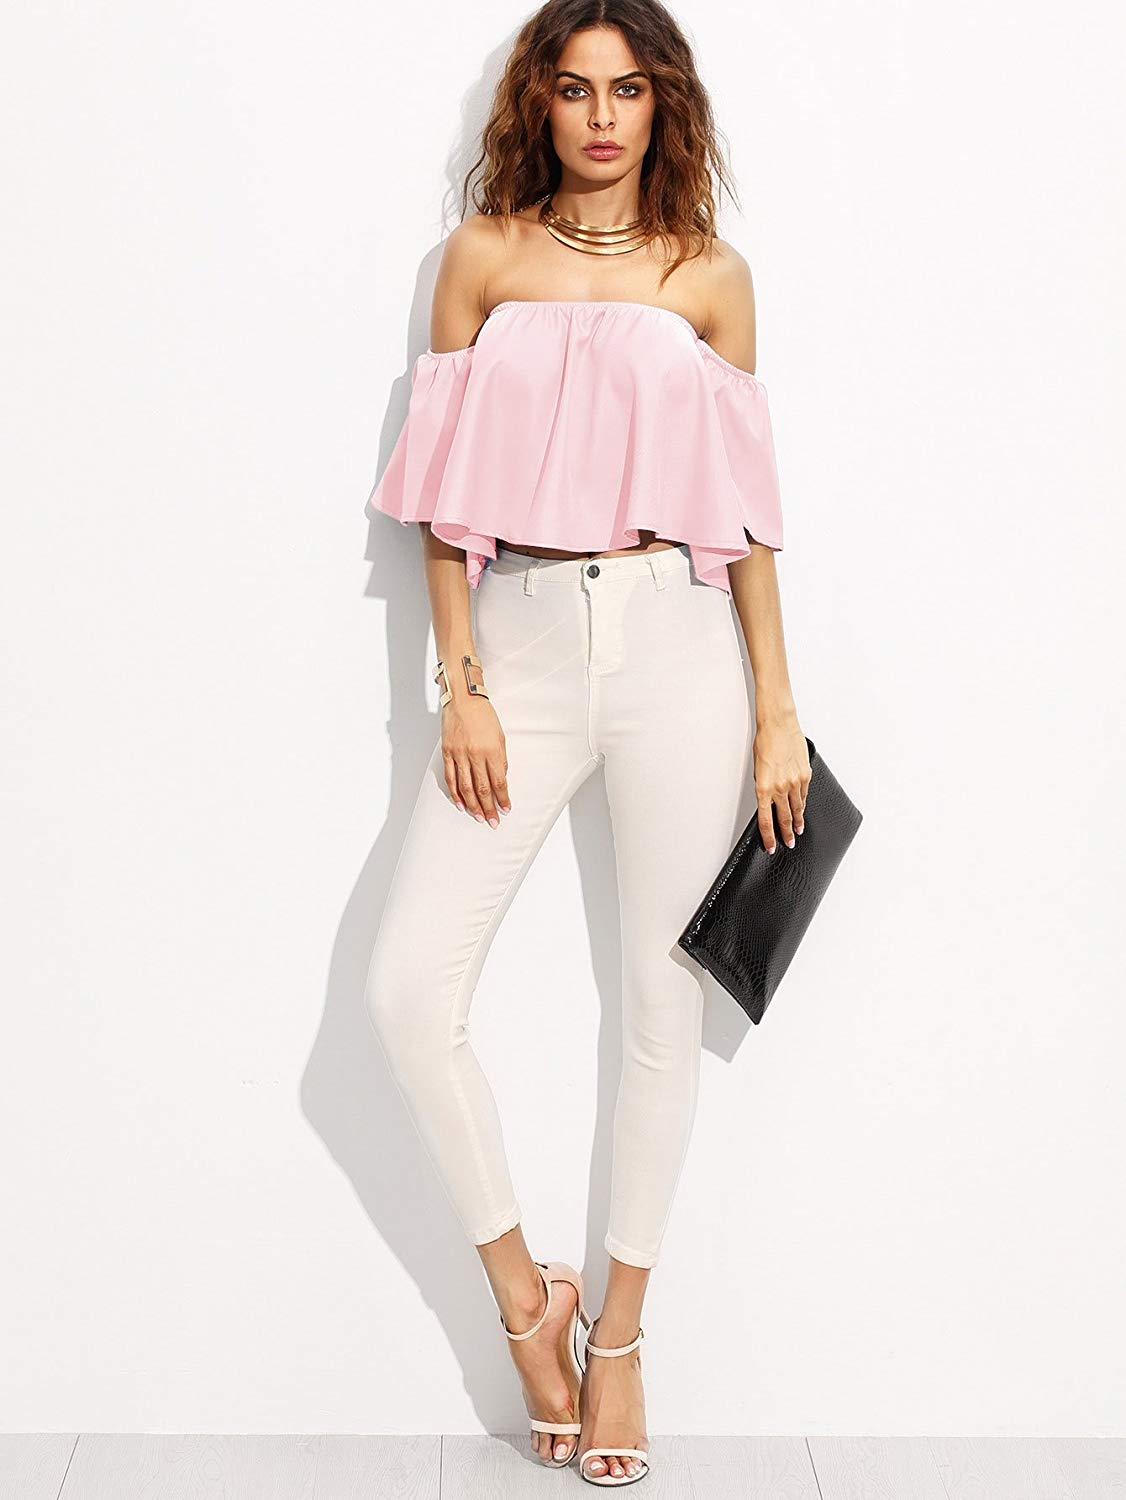 Cold shoulder crop top pink. Casual Womens Fashion and Womens Cool Trending Clothes, Dresses. #womensfashion #womensdress #summeroutfit #casualoutfit